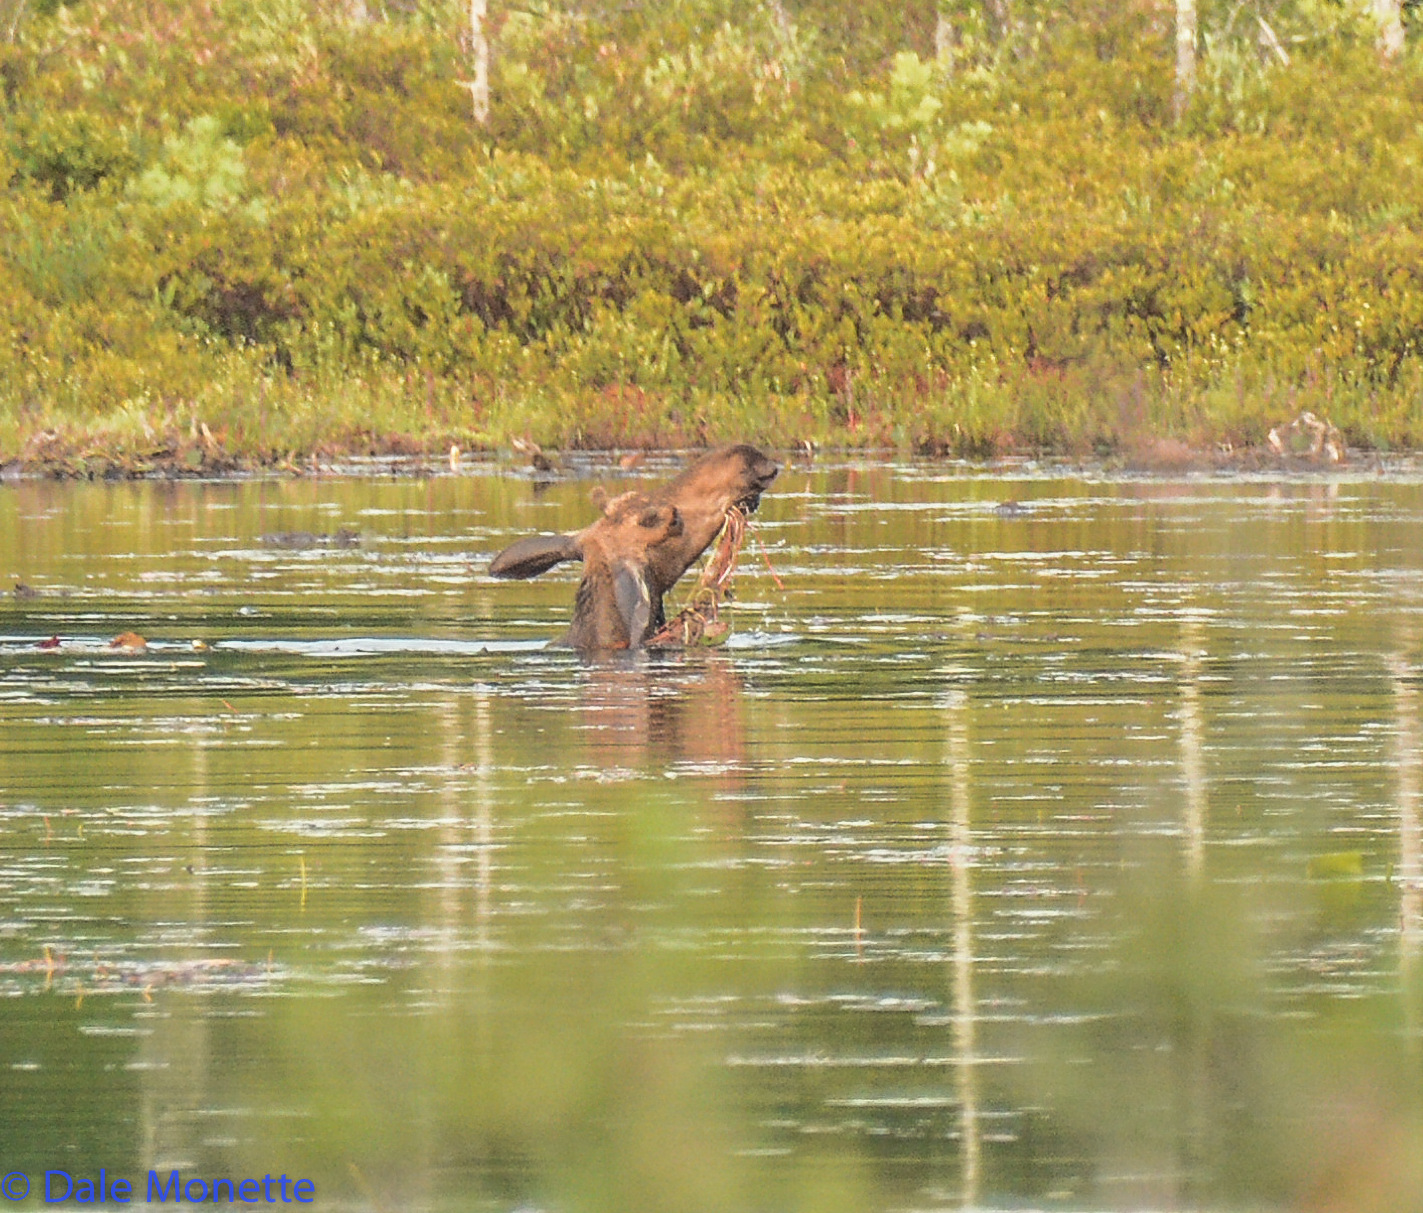 Here's a young bull in August working on some tasty pond lillies right up to his neck in a small beaver pond.